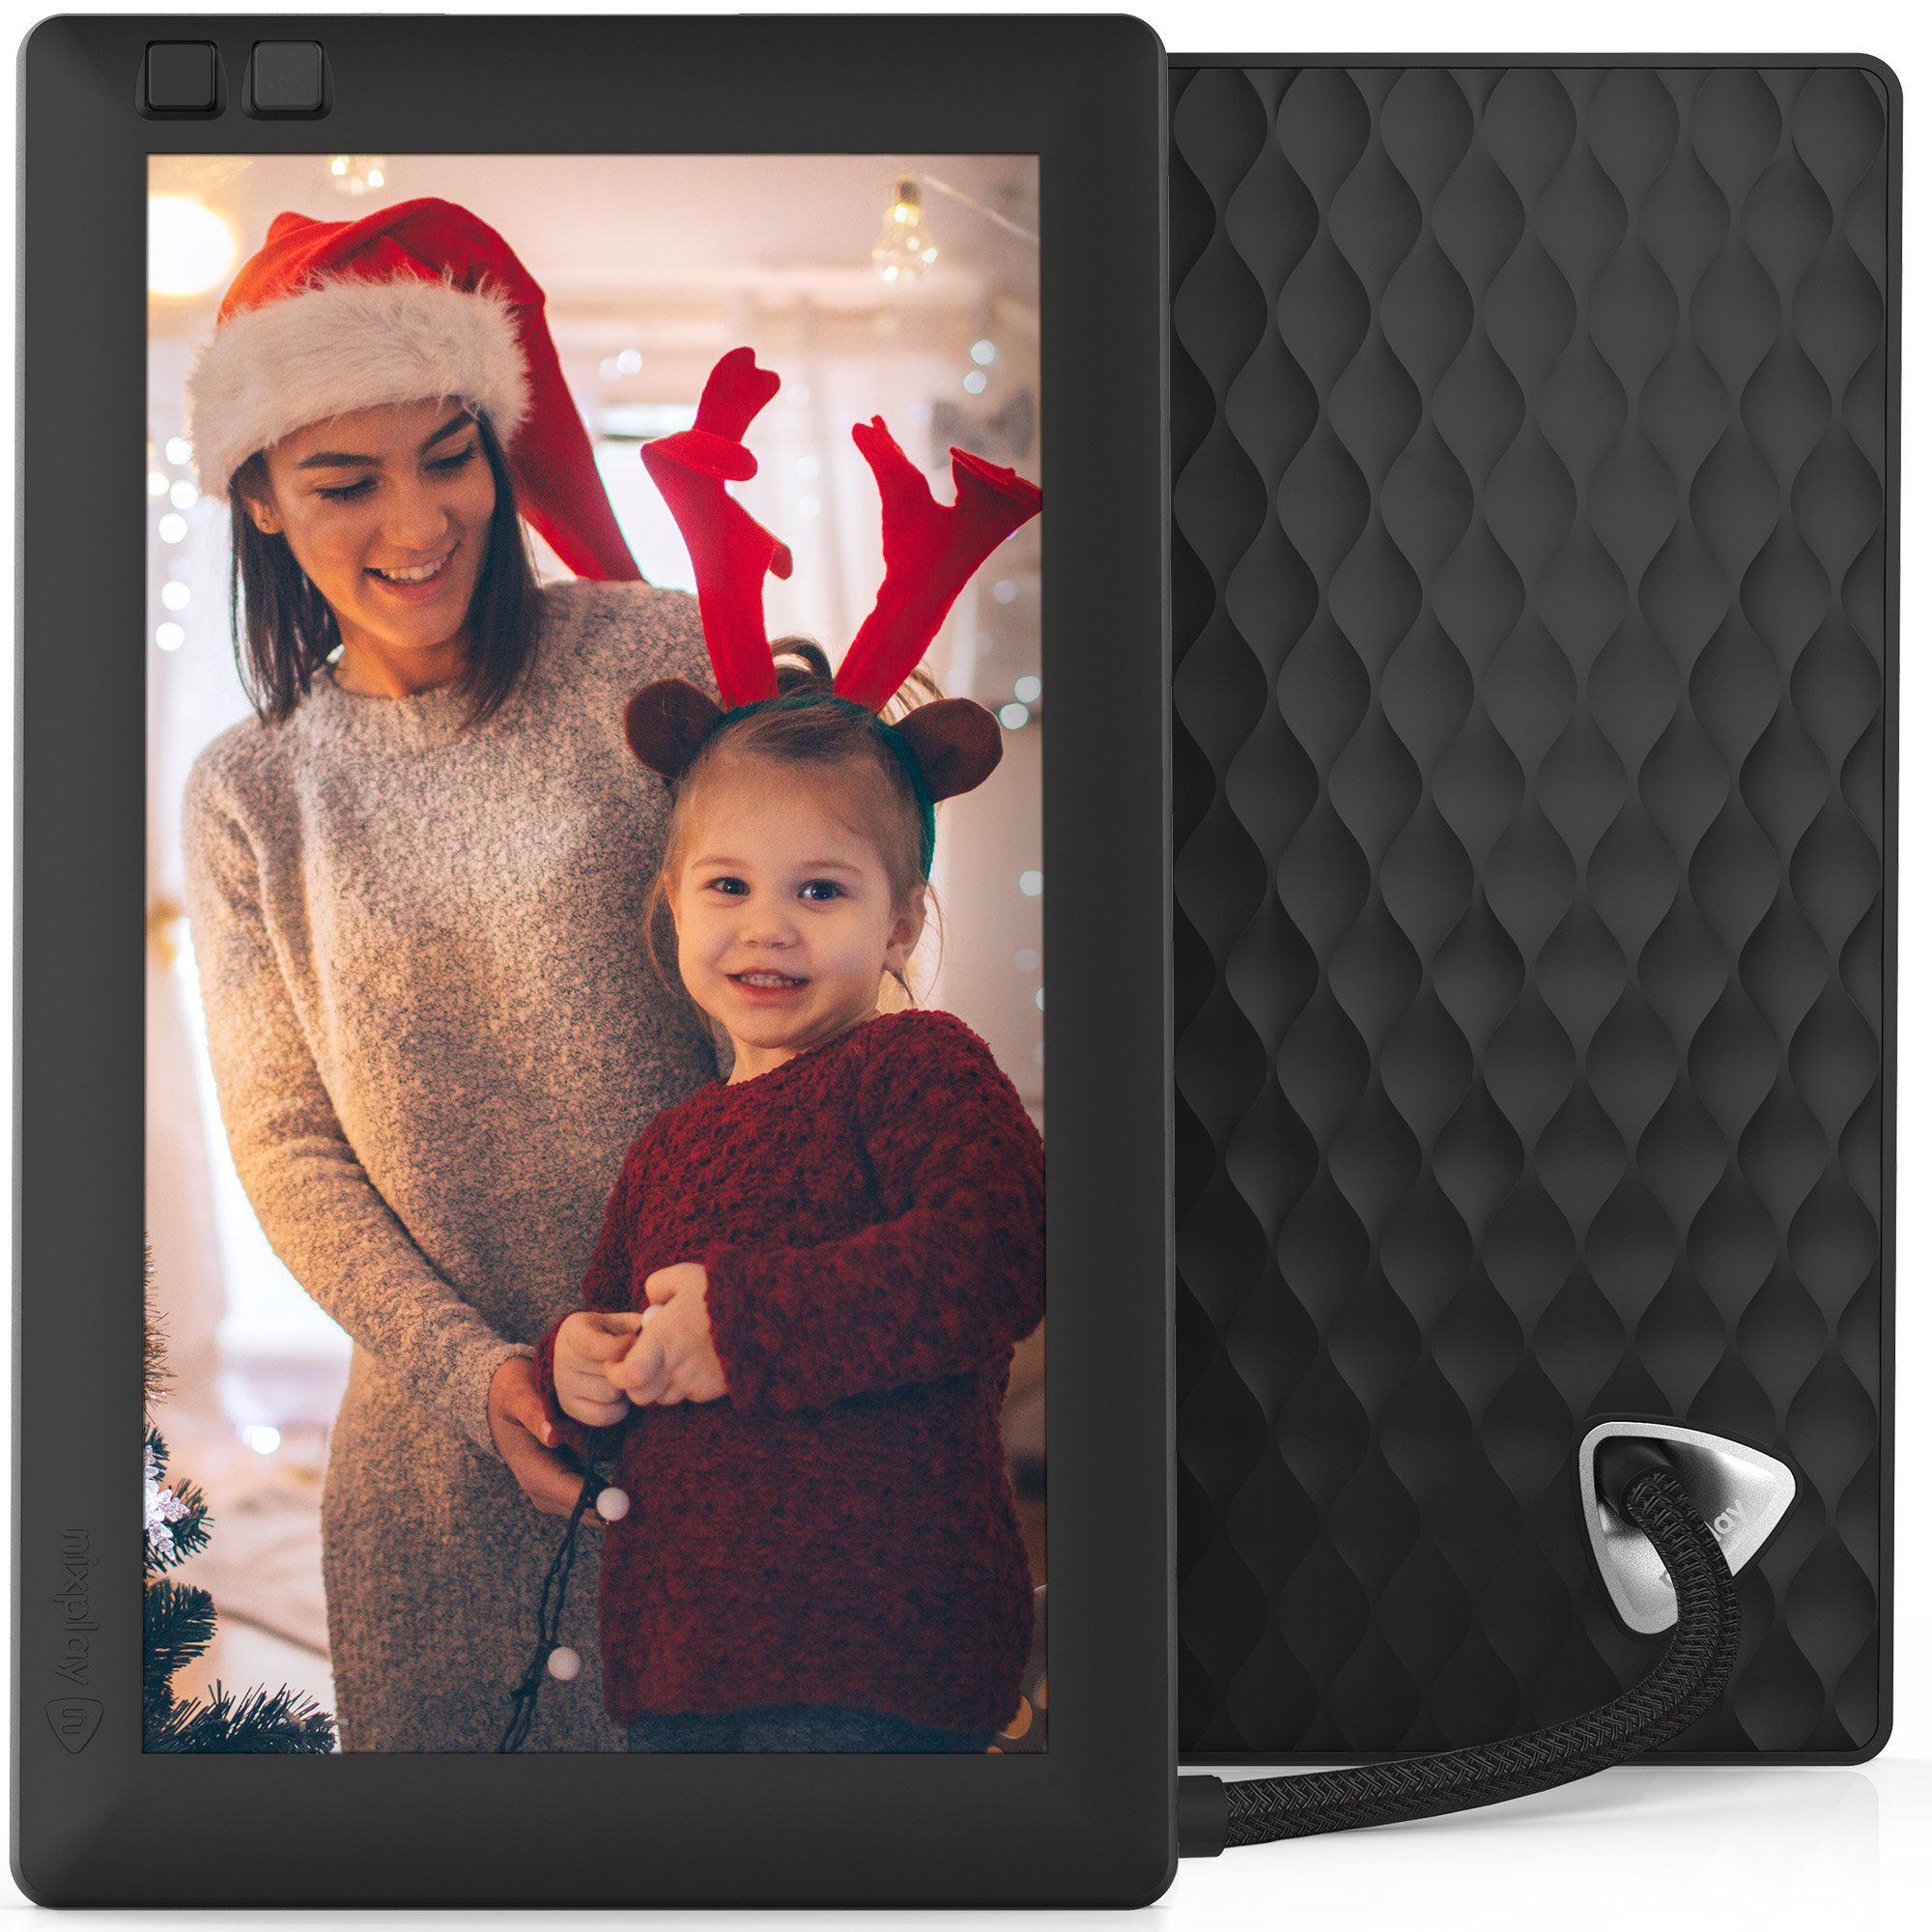 Nixplay Seed 7 inch WiFi Digital Photo Frame - Black  by Nixplay